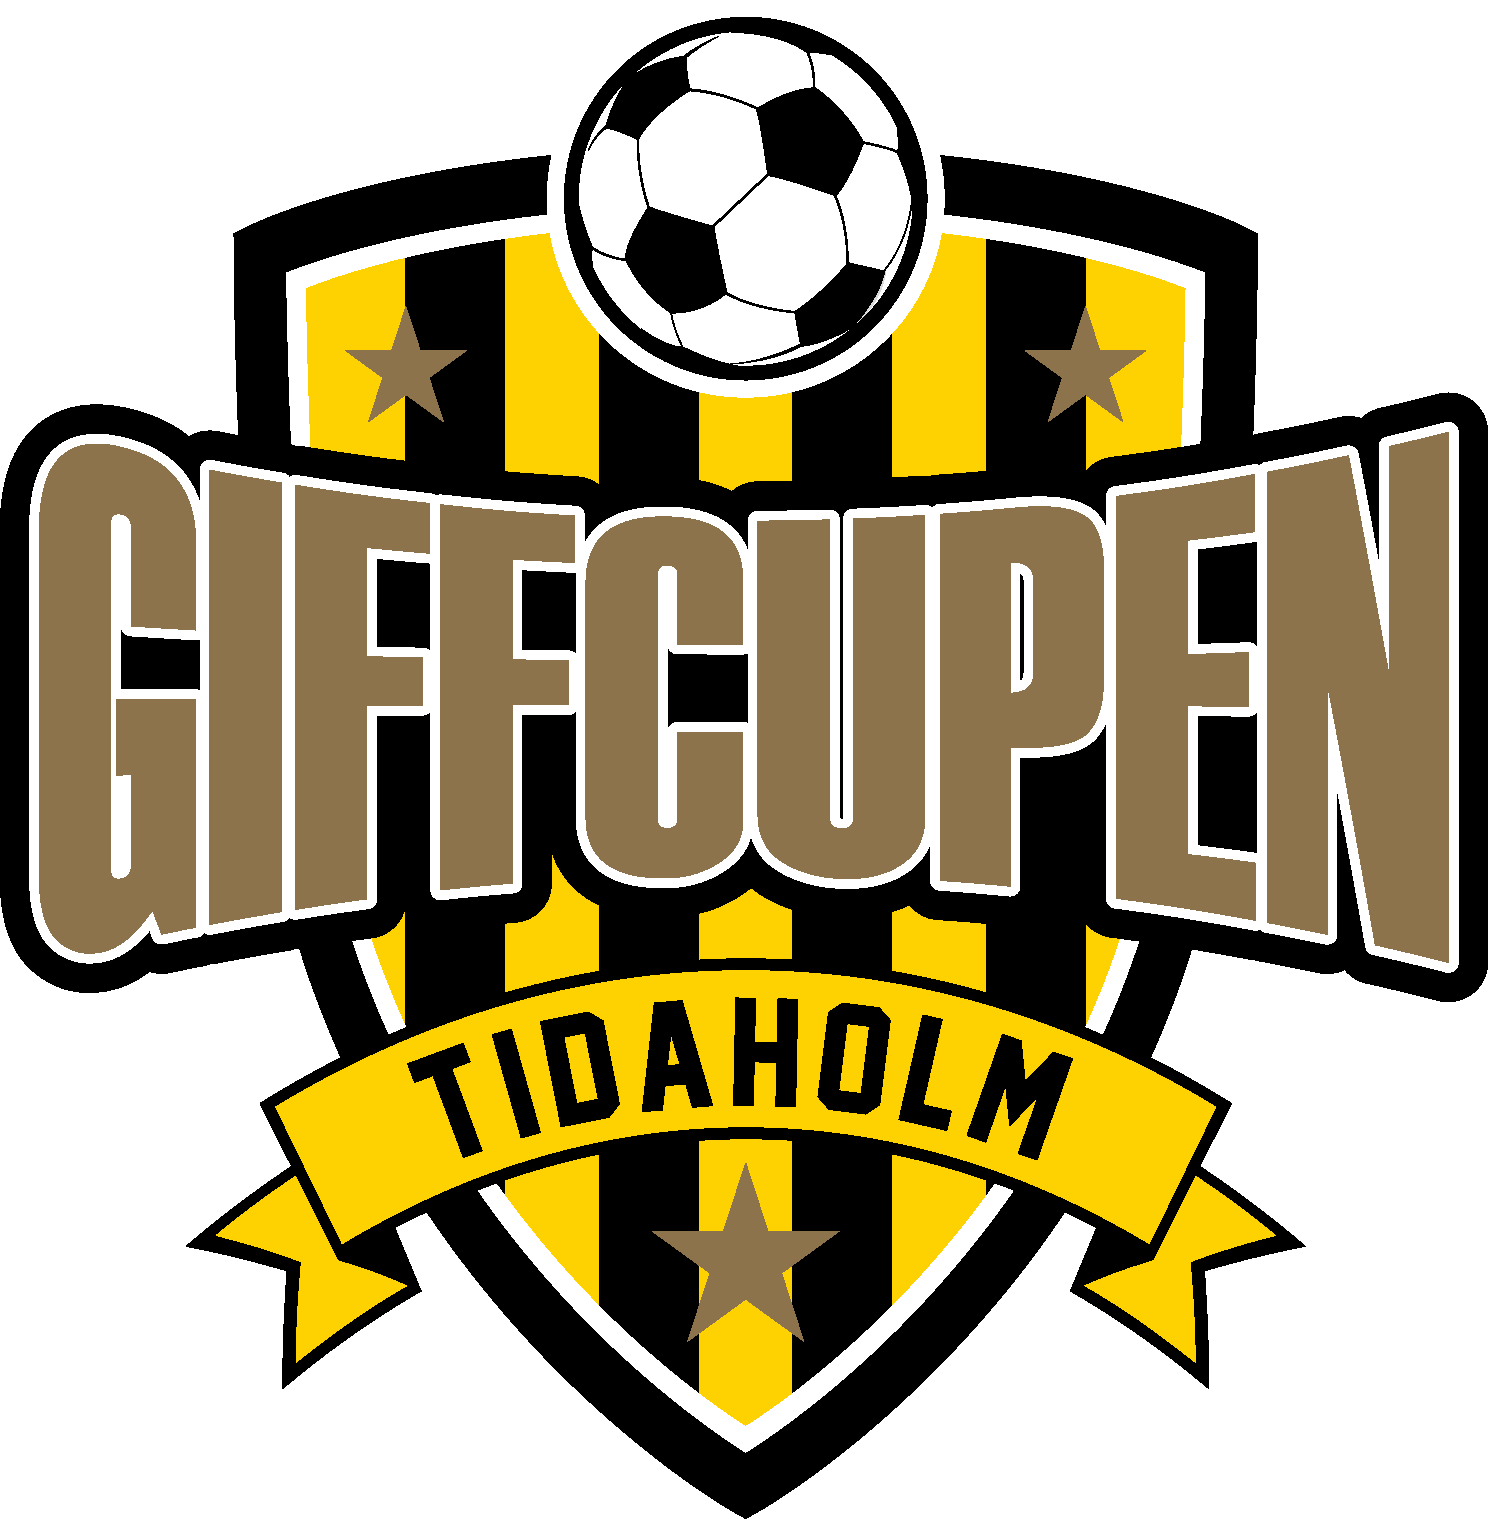 Giffcupen